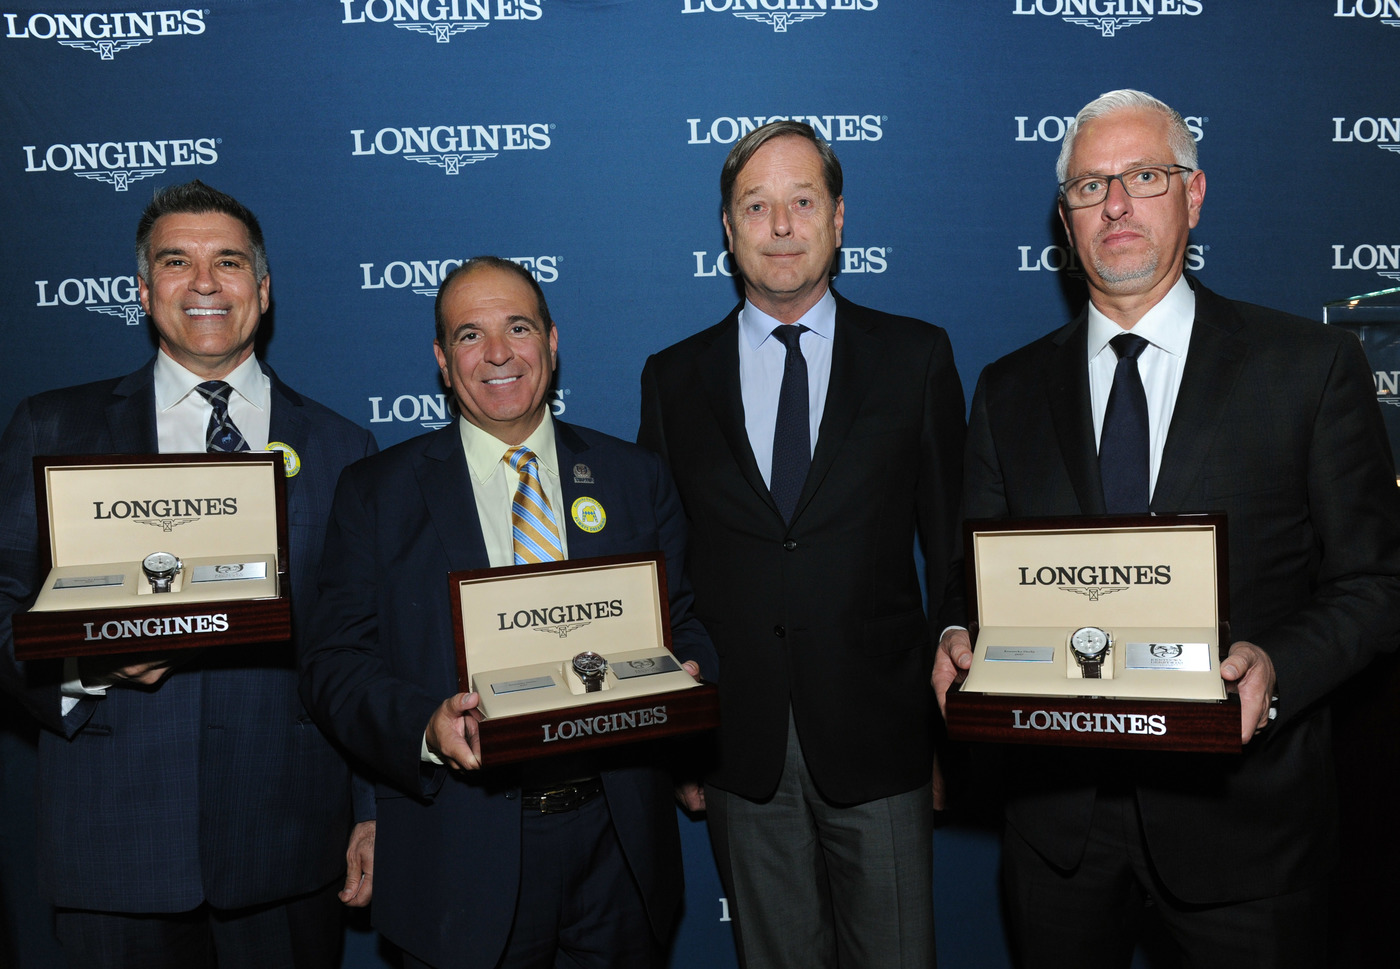 Longines Flat Racing Event: The 143rd Kentucky Derby marked by the victory of Always Dreaming 1